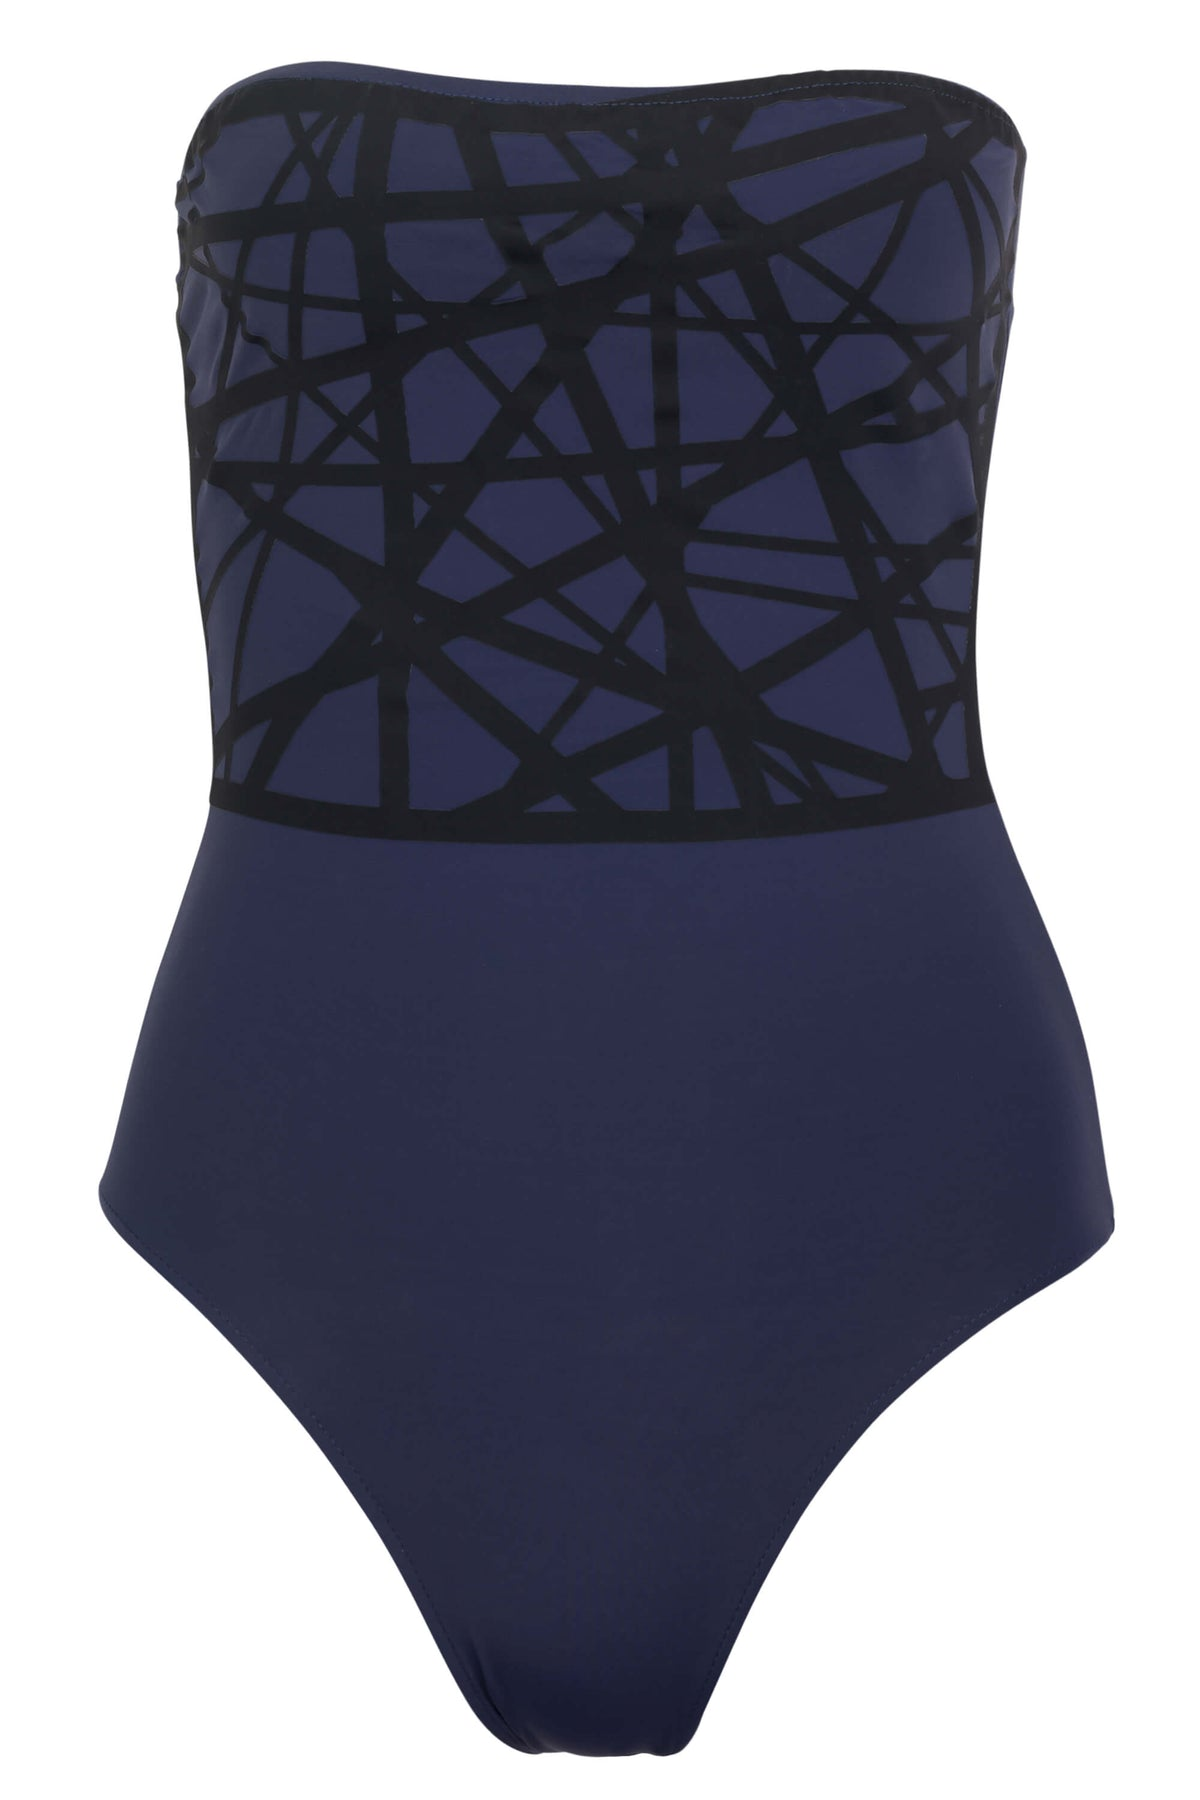 Angela one piece swimsuit in navy with black laser details.